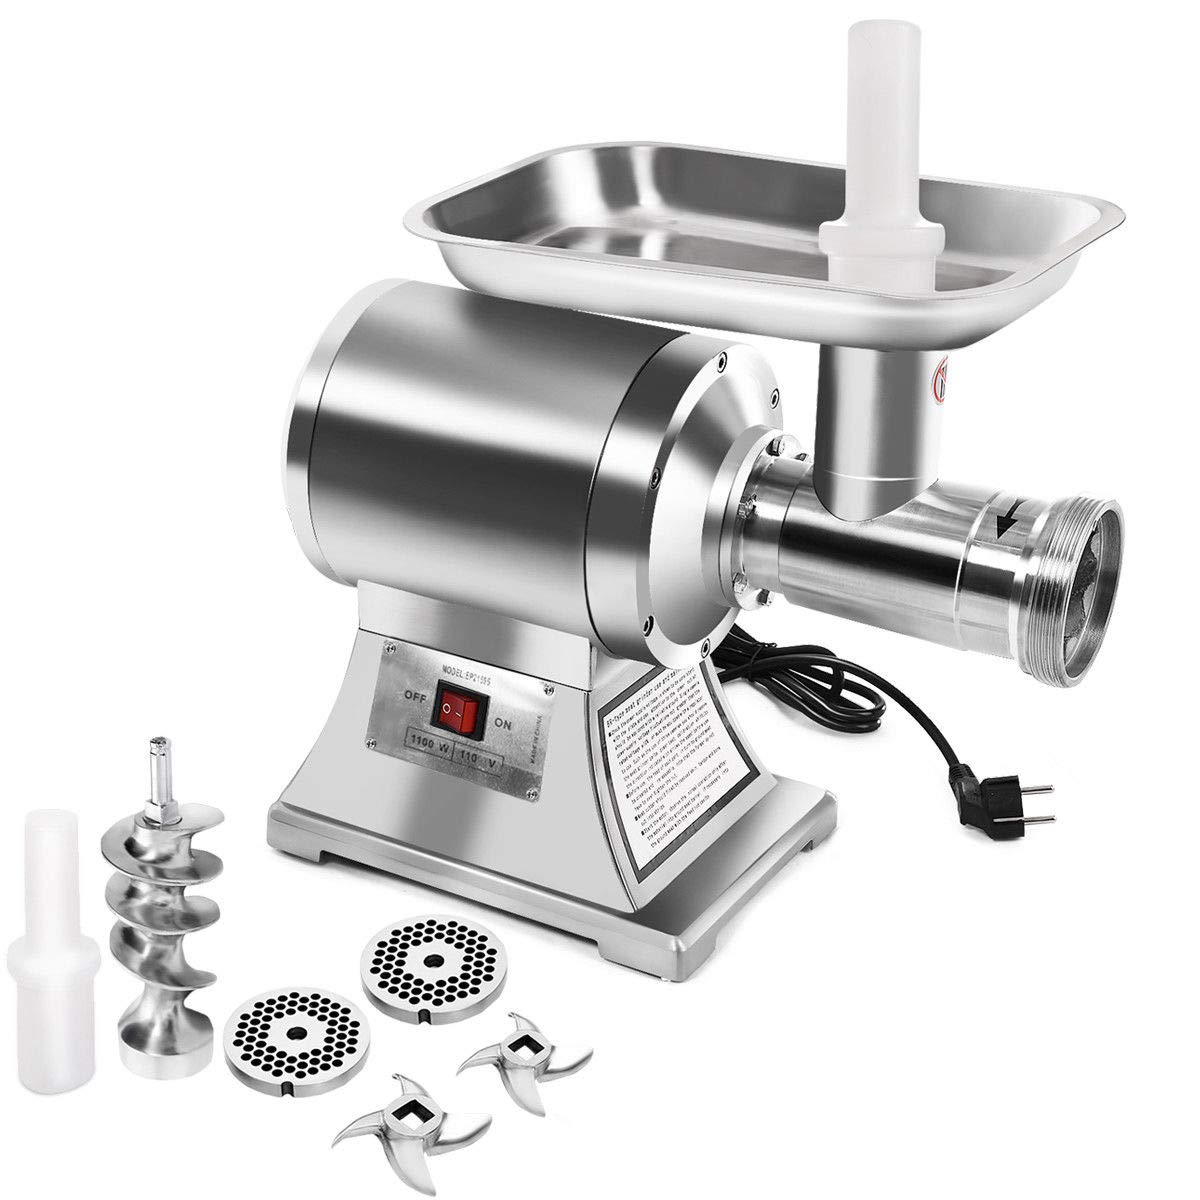 Tangkula Commercial Stainless Steel True 1HP Electric Meat Grinder No #12